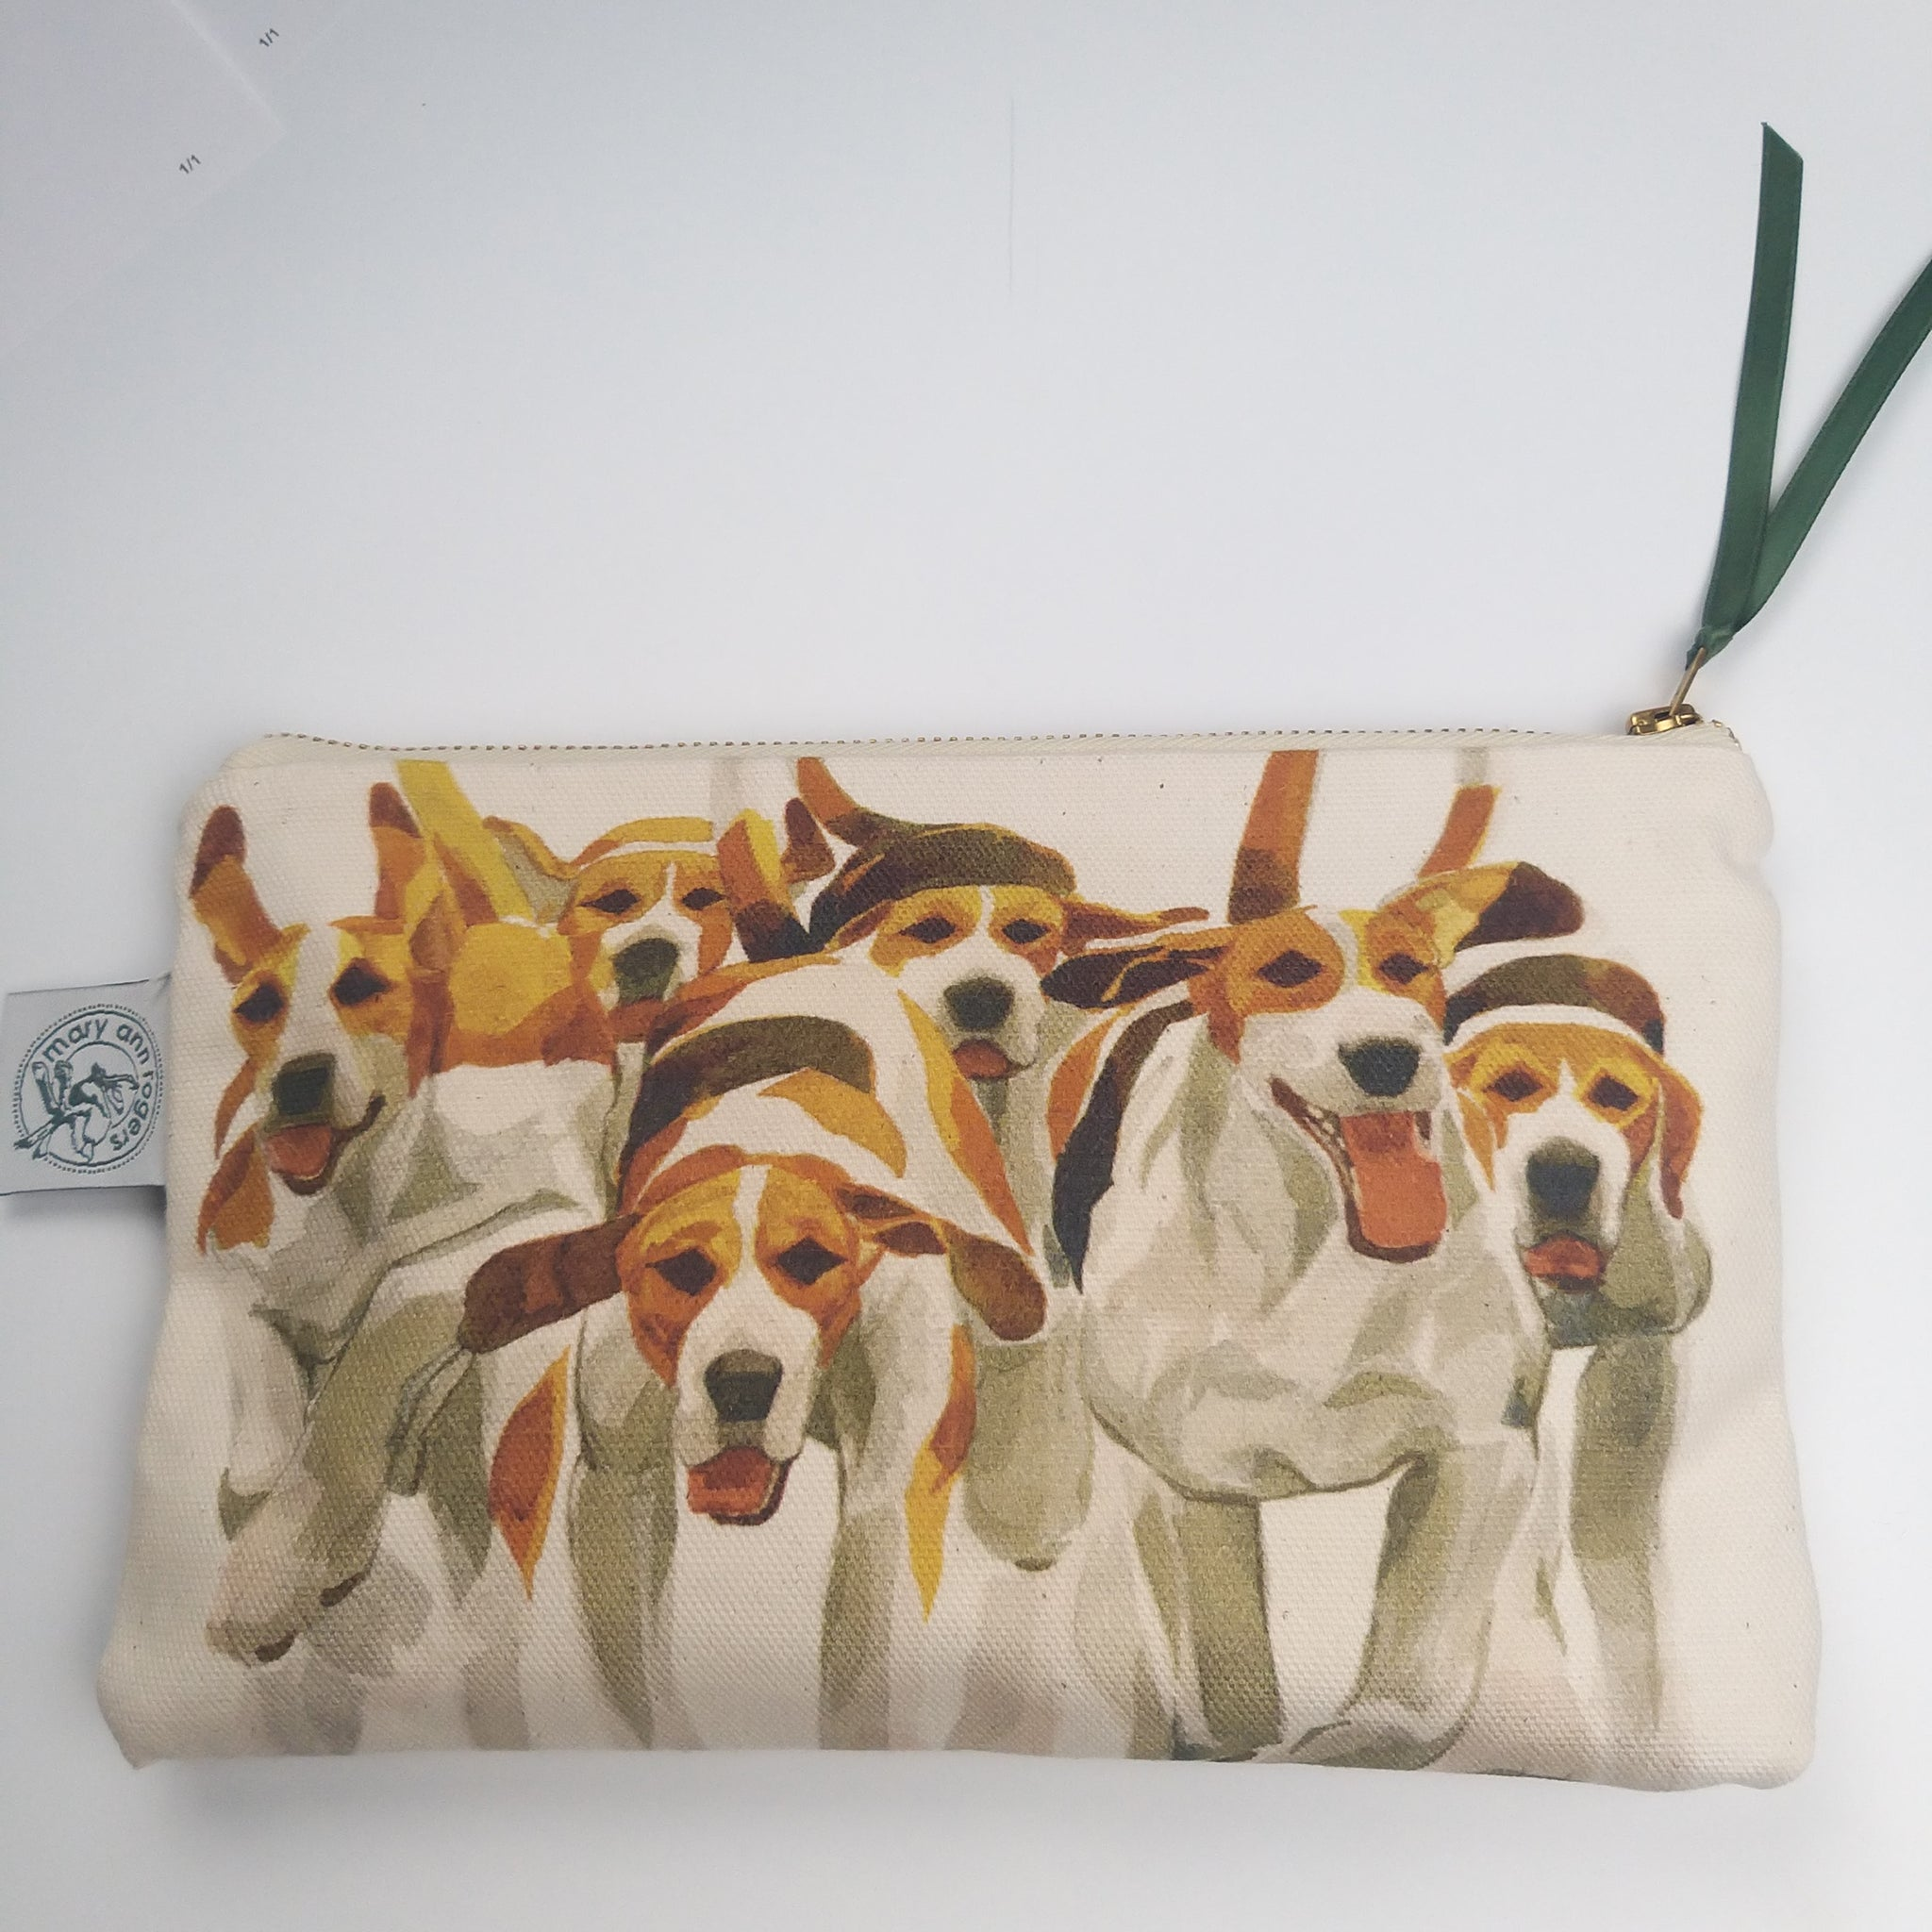 Mary Ann Roger's Cosmetic Bag